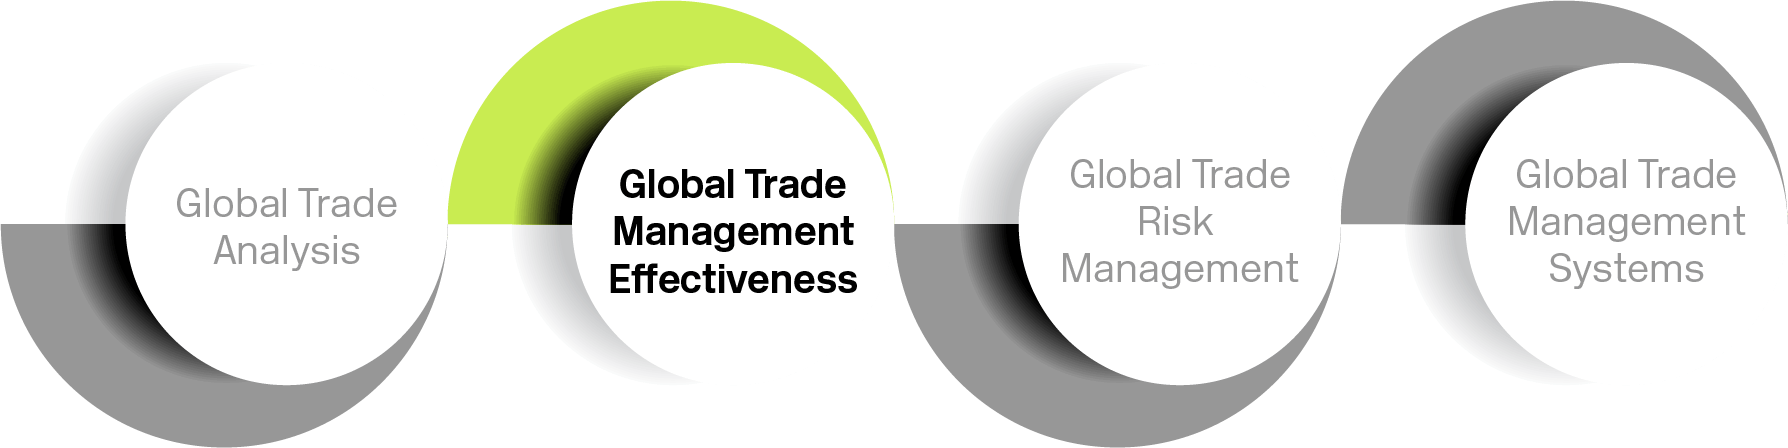 Global trade management effectiveness